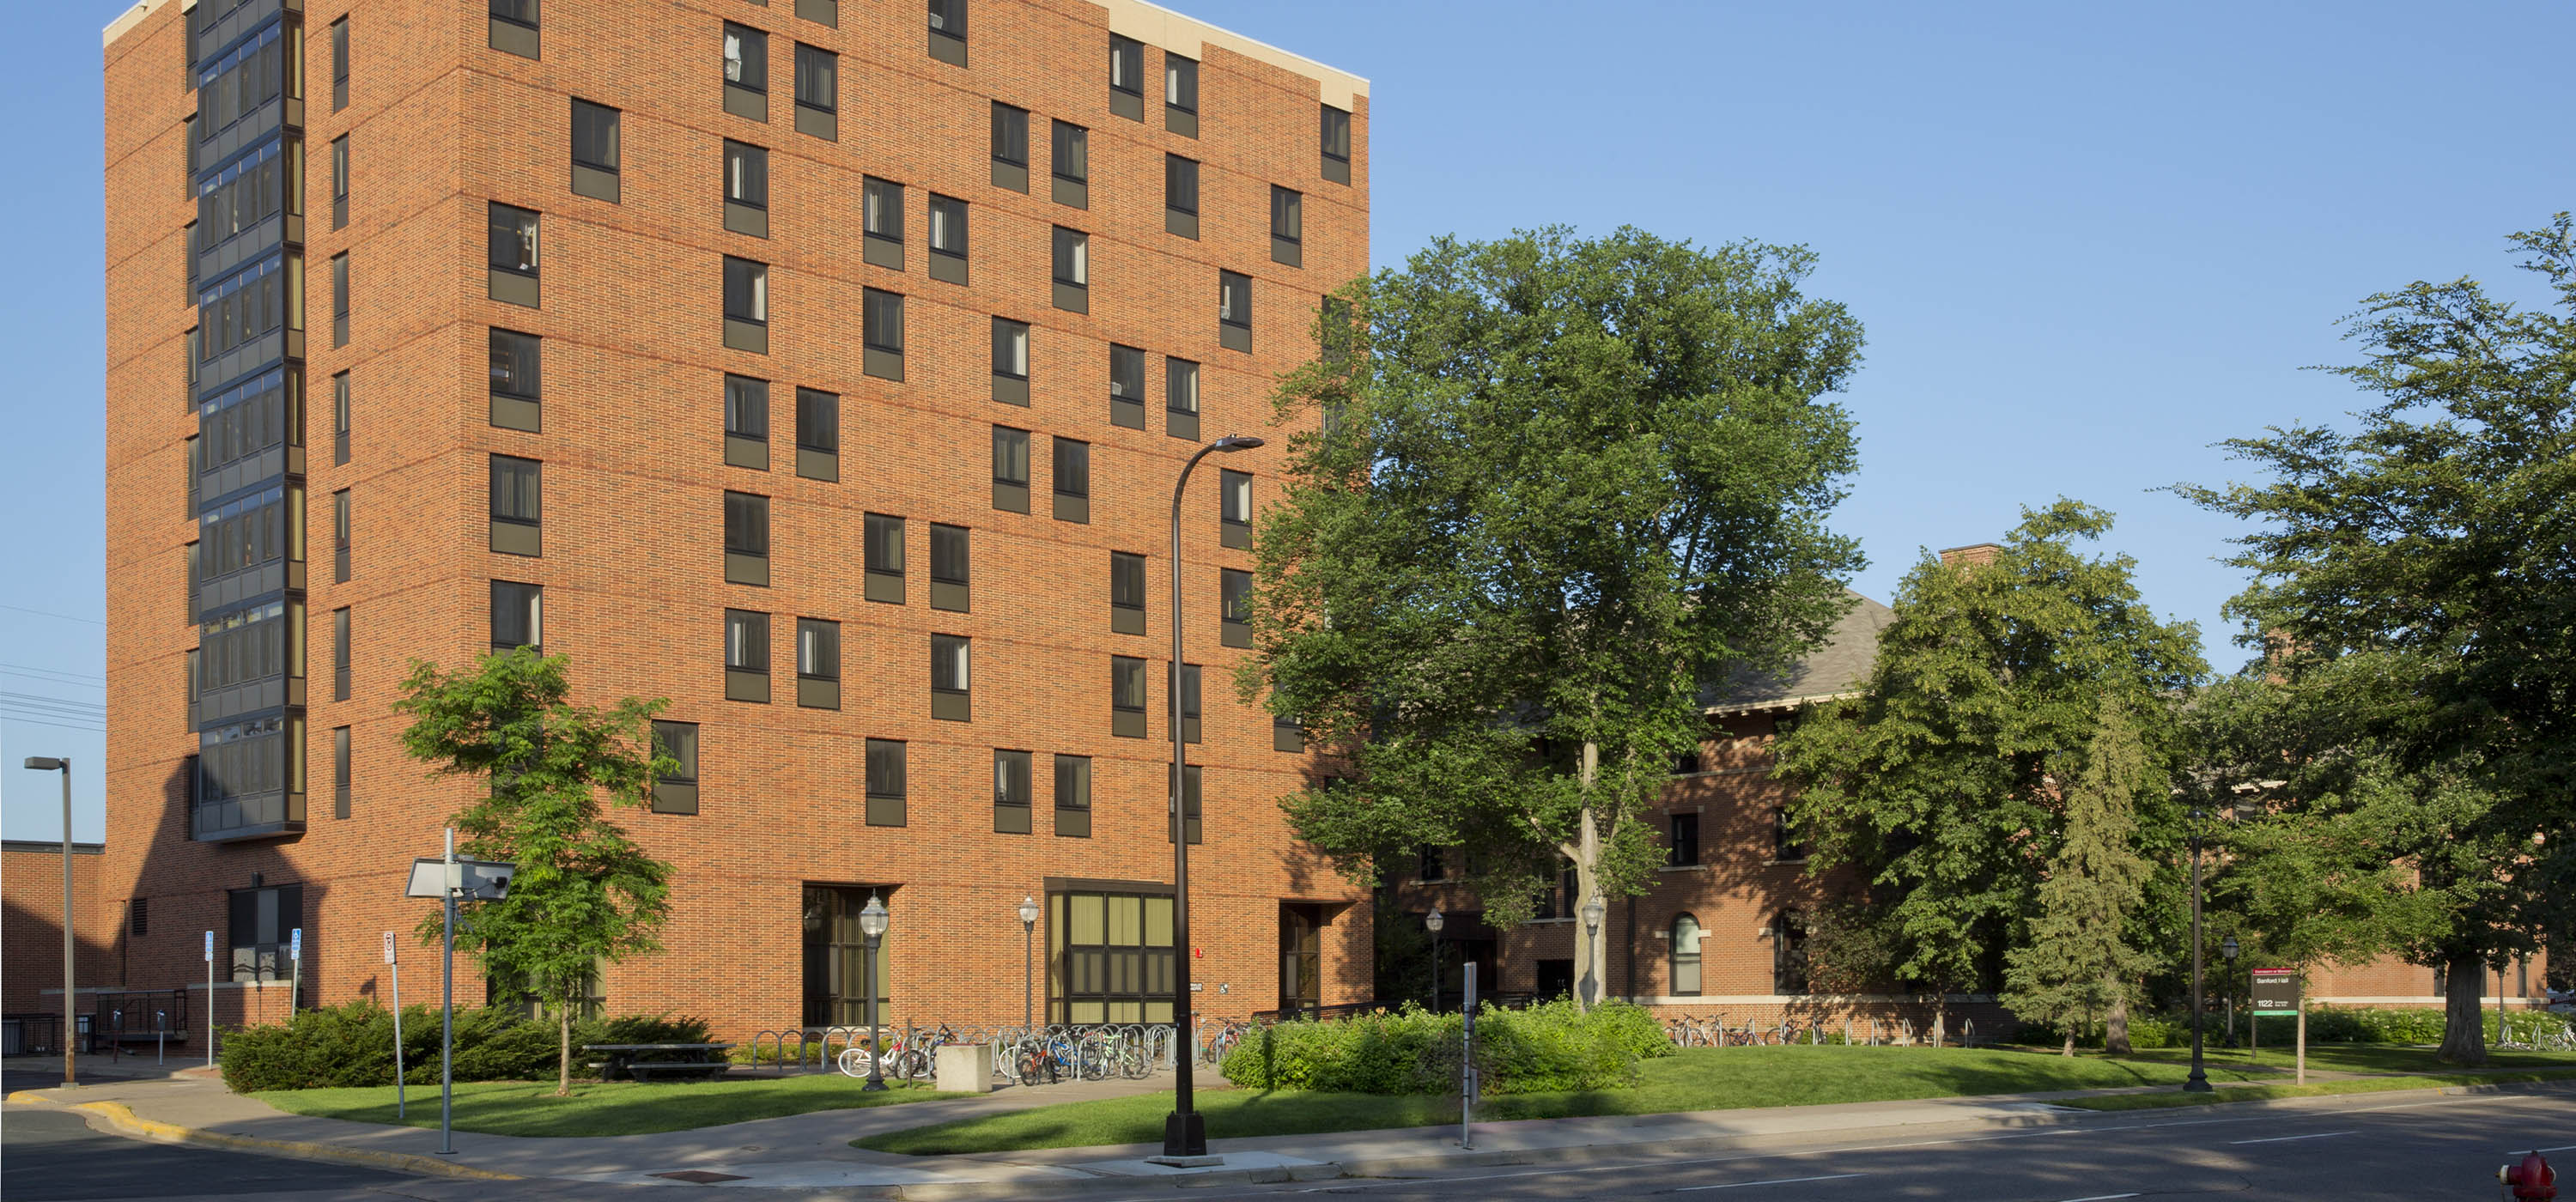 The Ultimate Ranking Of Freshman Dorms At The University